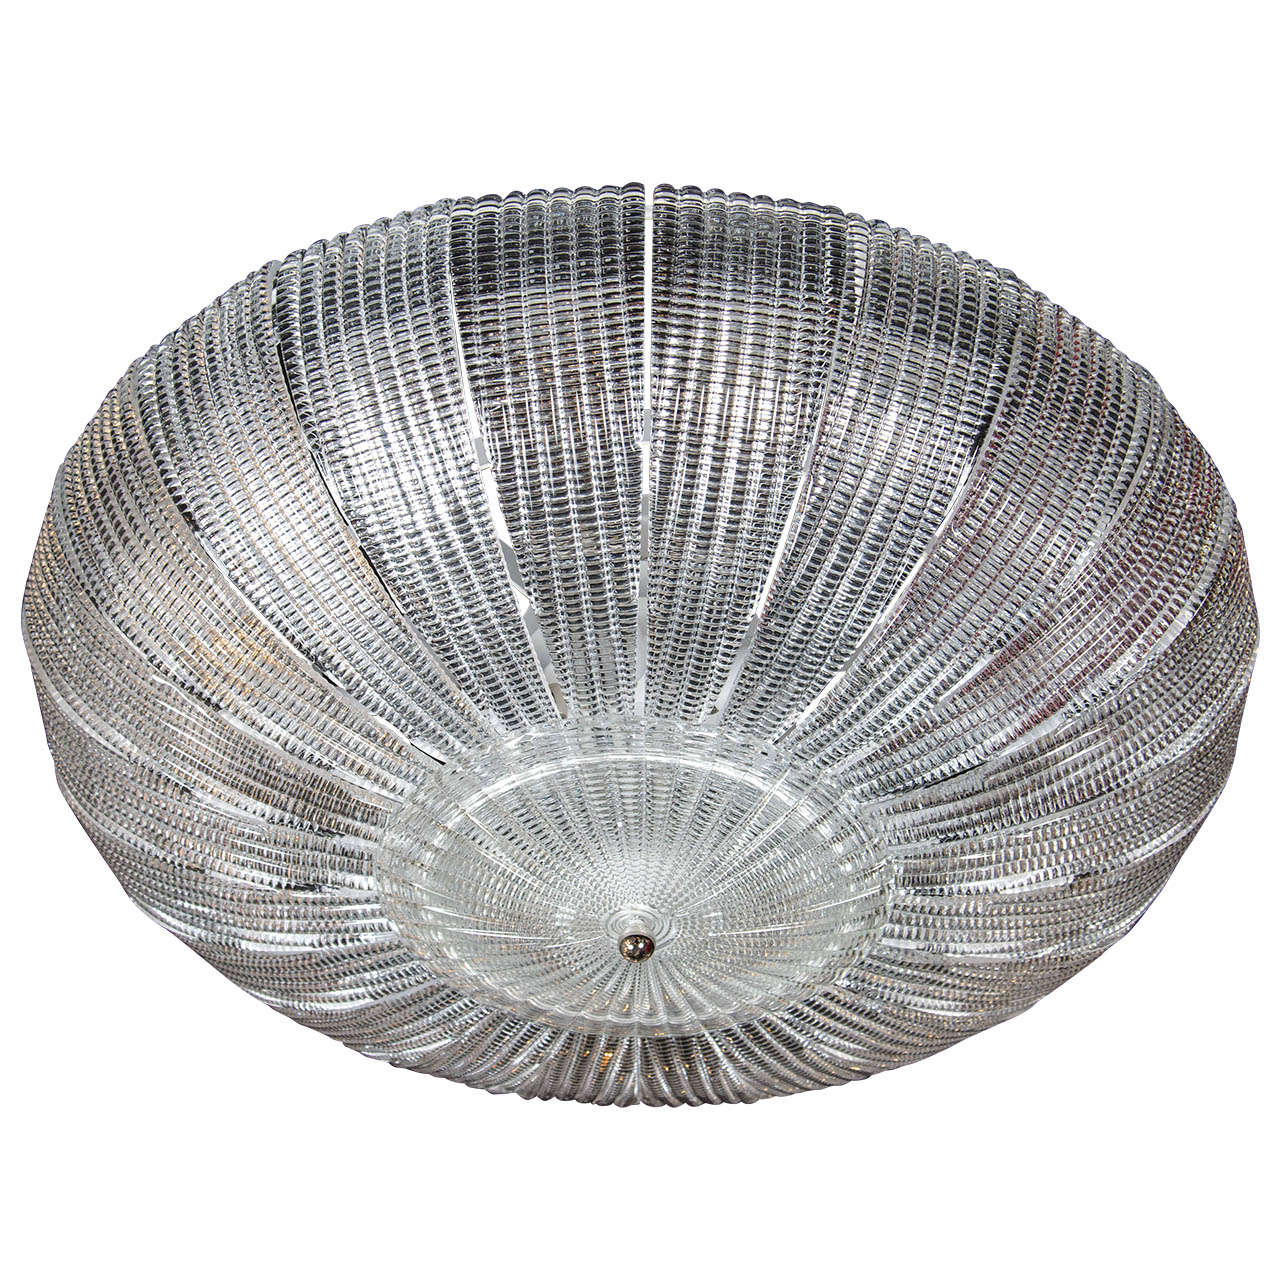 Exquisite Barovier & Toso Textured Glass Flush Mount Chandelier